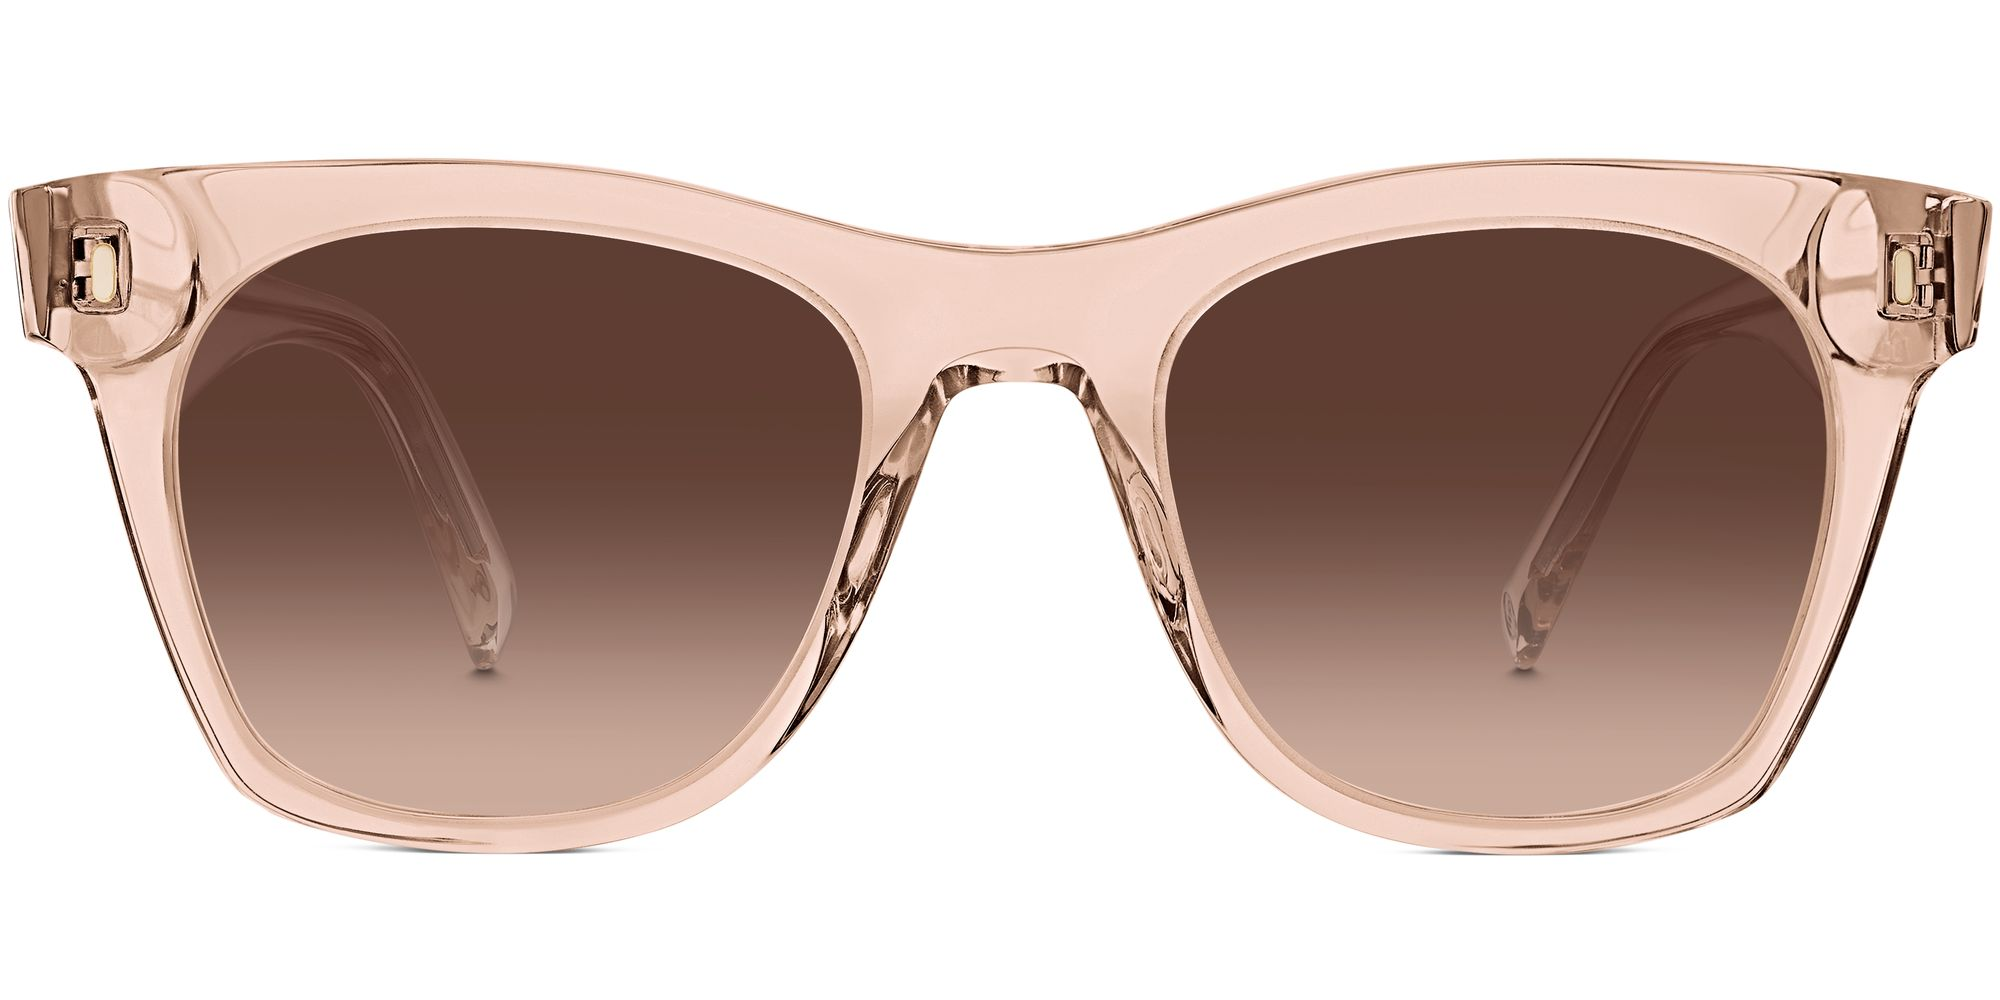 Hunt Large Sunglasses - Warby Parker spring cleaning - The Gem Picker